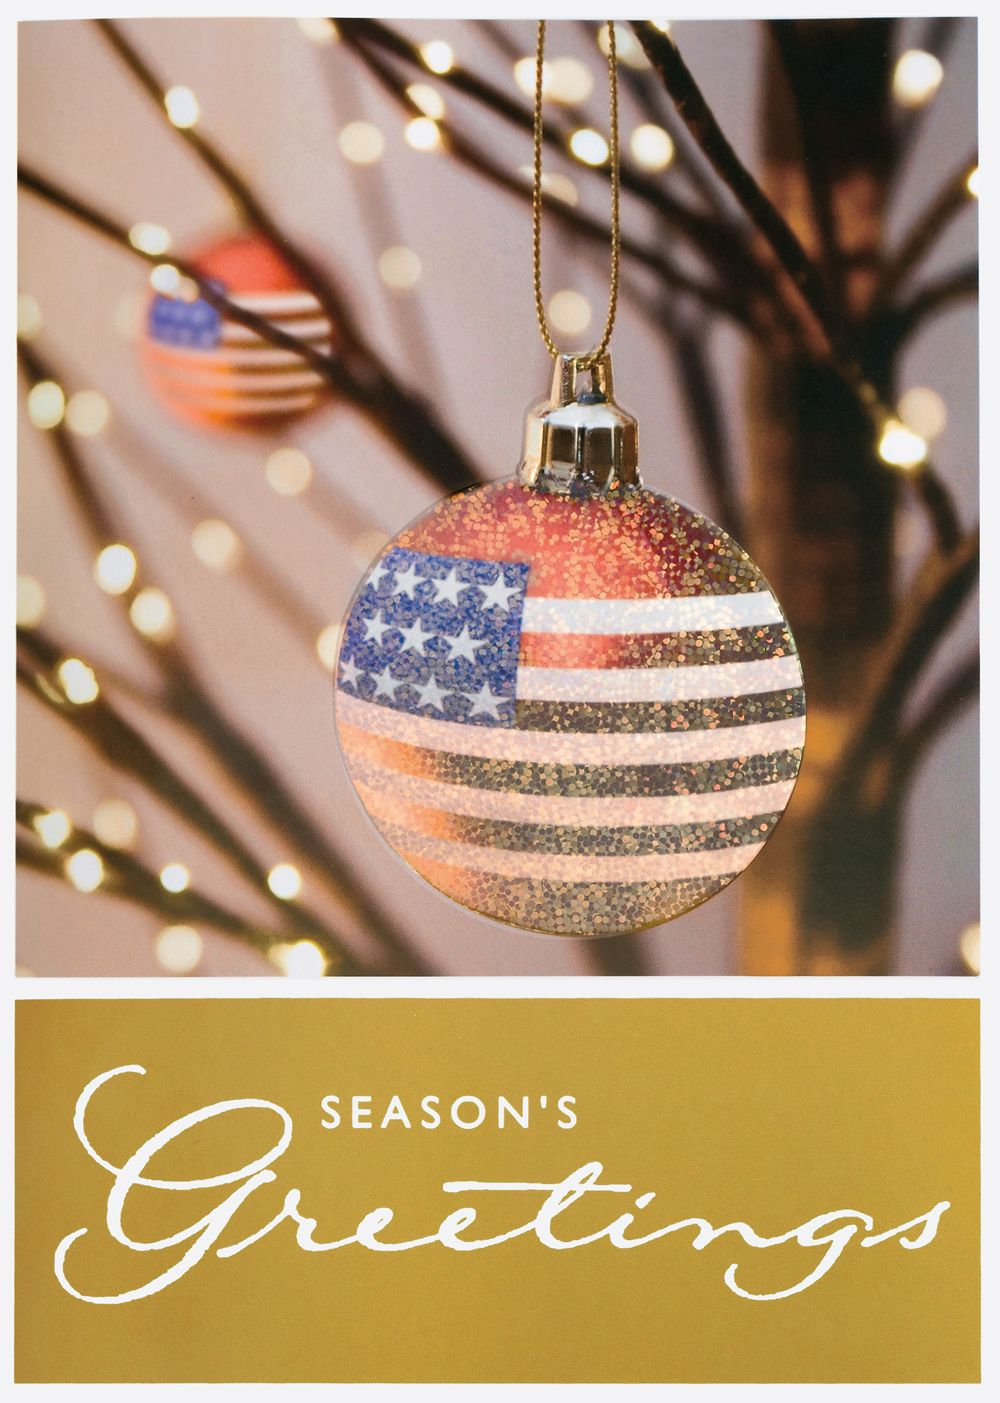 Star Spangled Ornament Holiday Greeting Cards The Glitter Effect